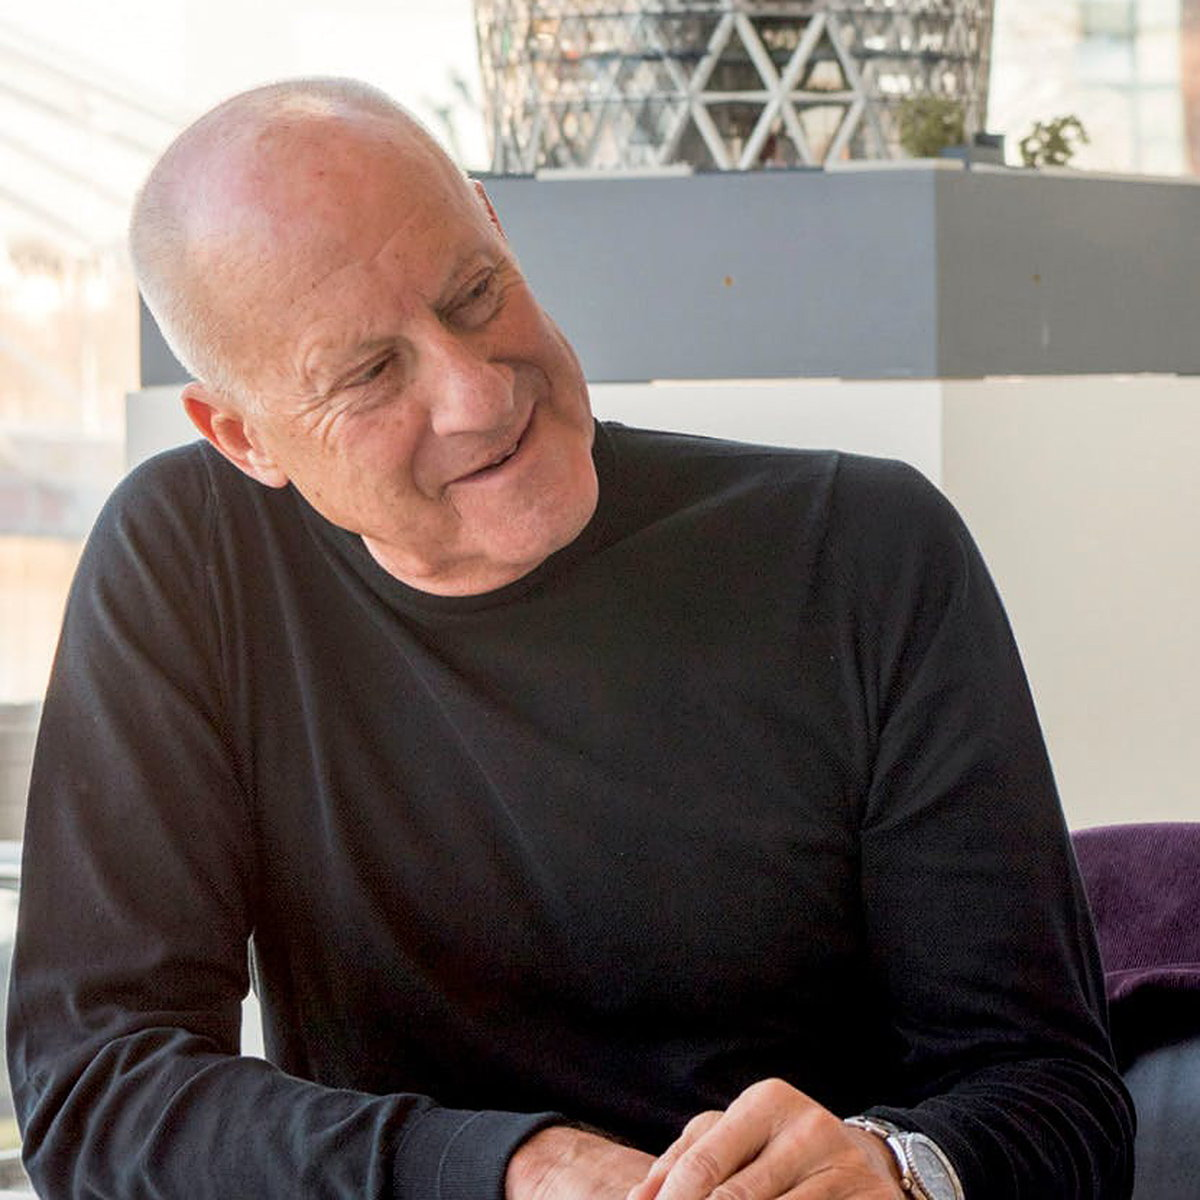 RIBA Announces Call for Submissions for 2020 Norman Foster Travelling Scholarship